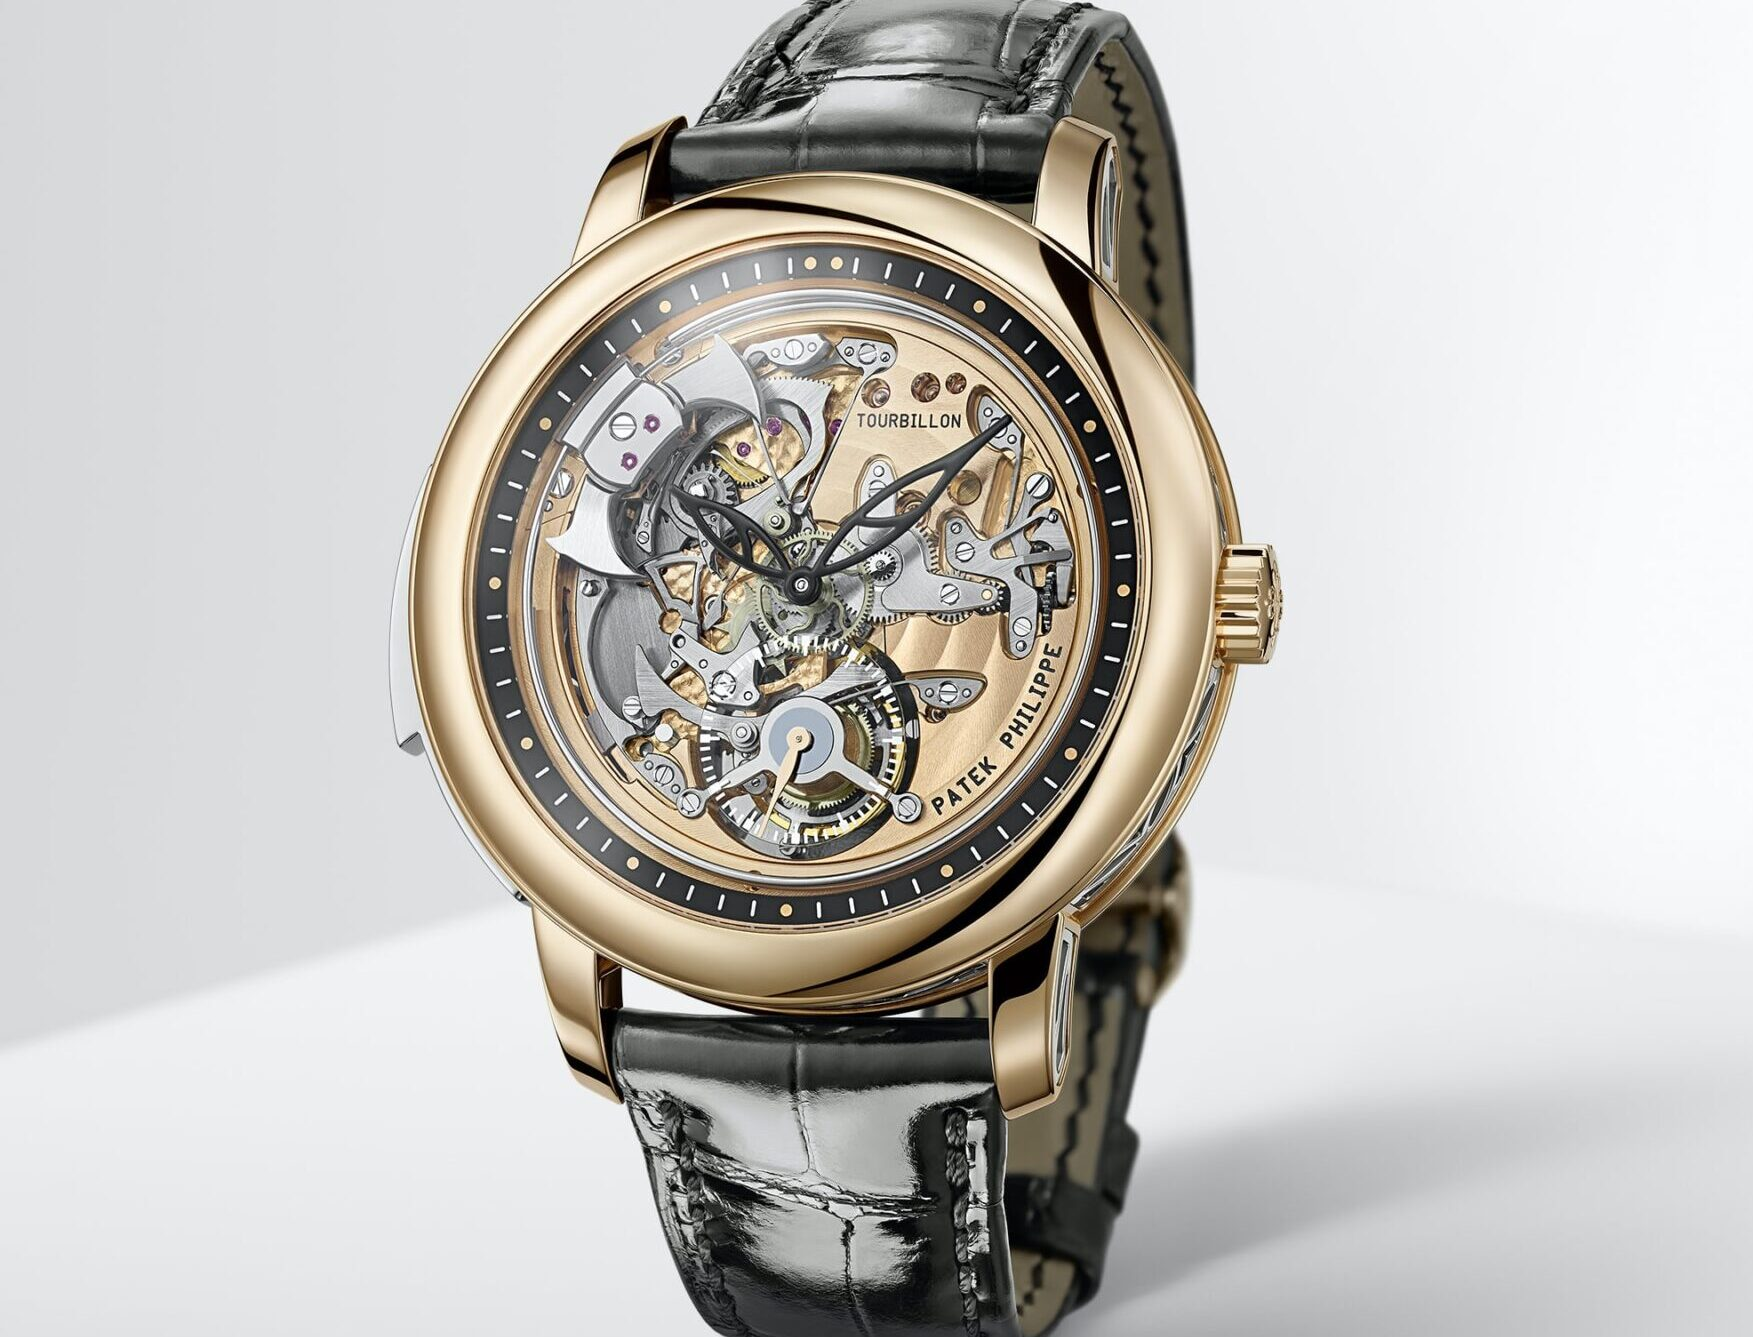 Patek Philippe Ref 5303R-001 Minute Repeater Tourbillon-